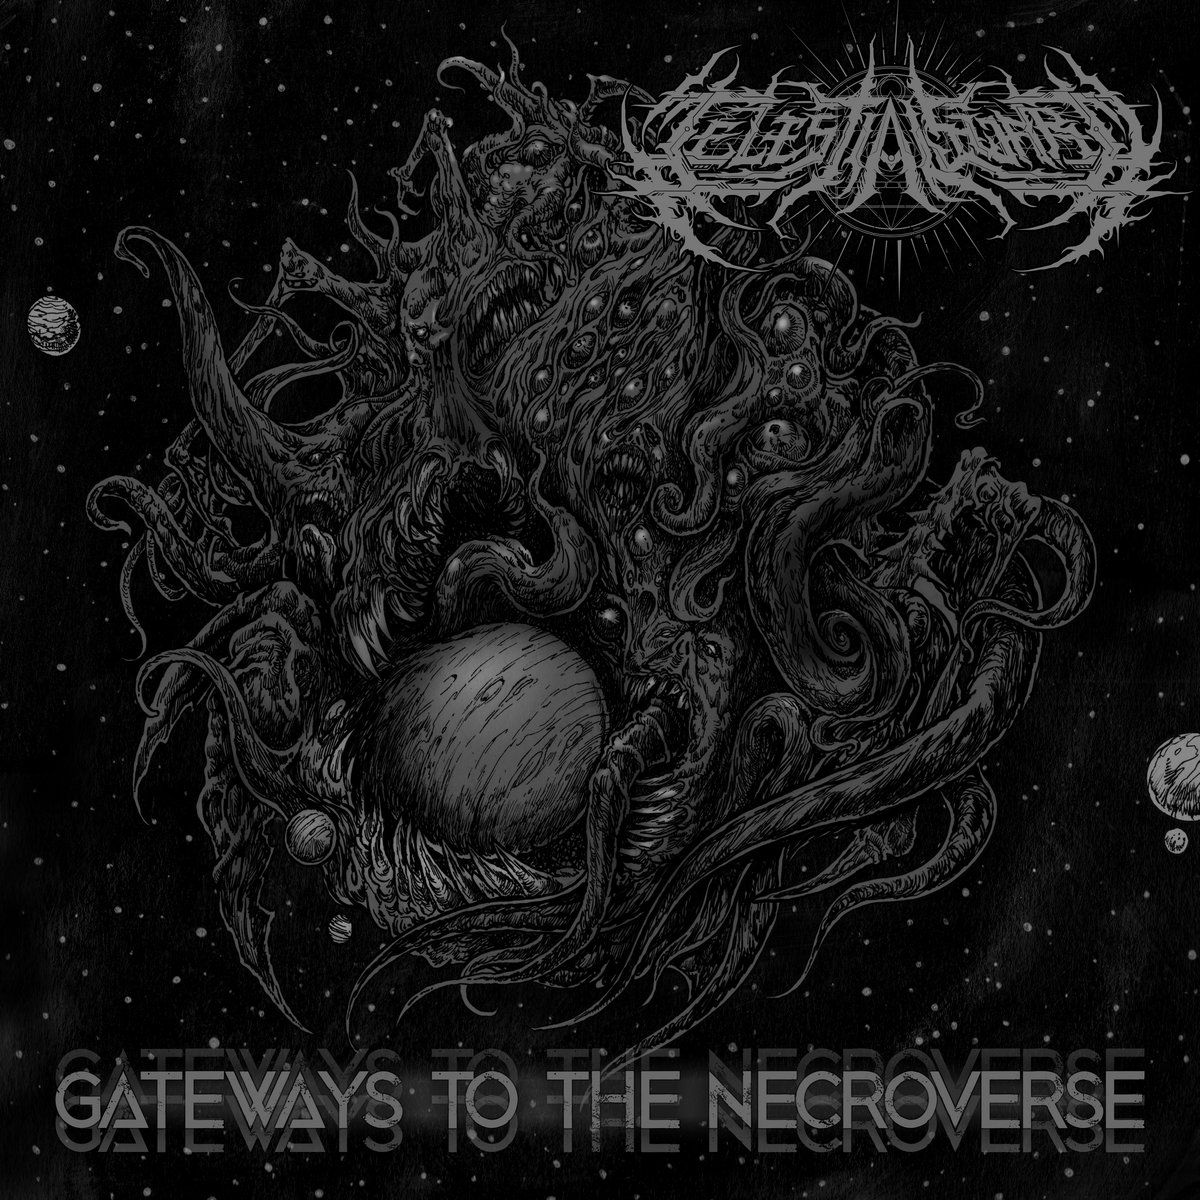 Review for Celestial Swarm - Gateways to the Necroverse